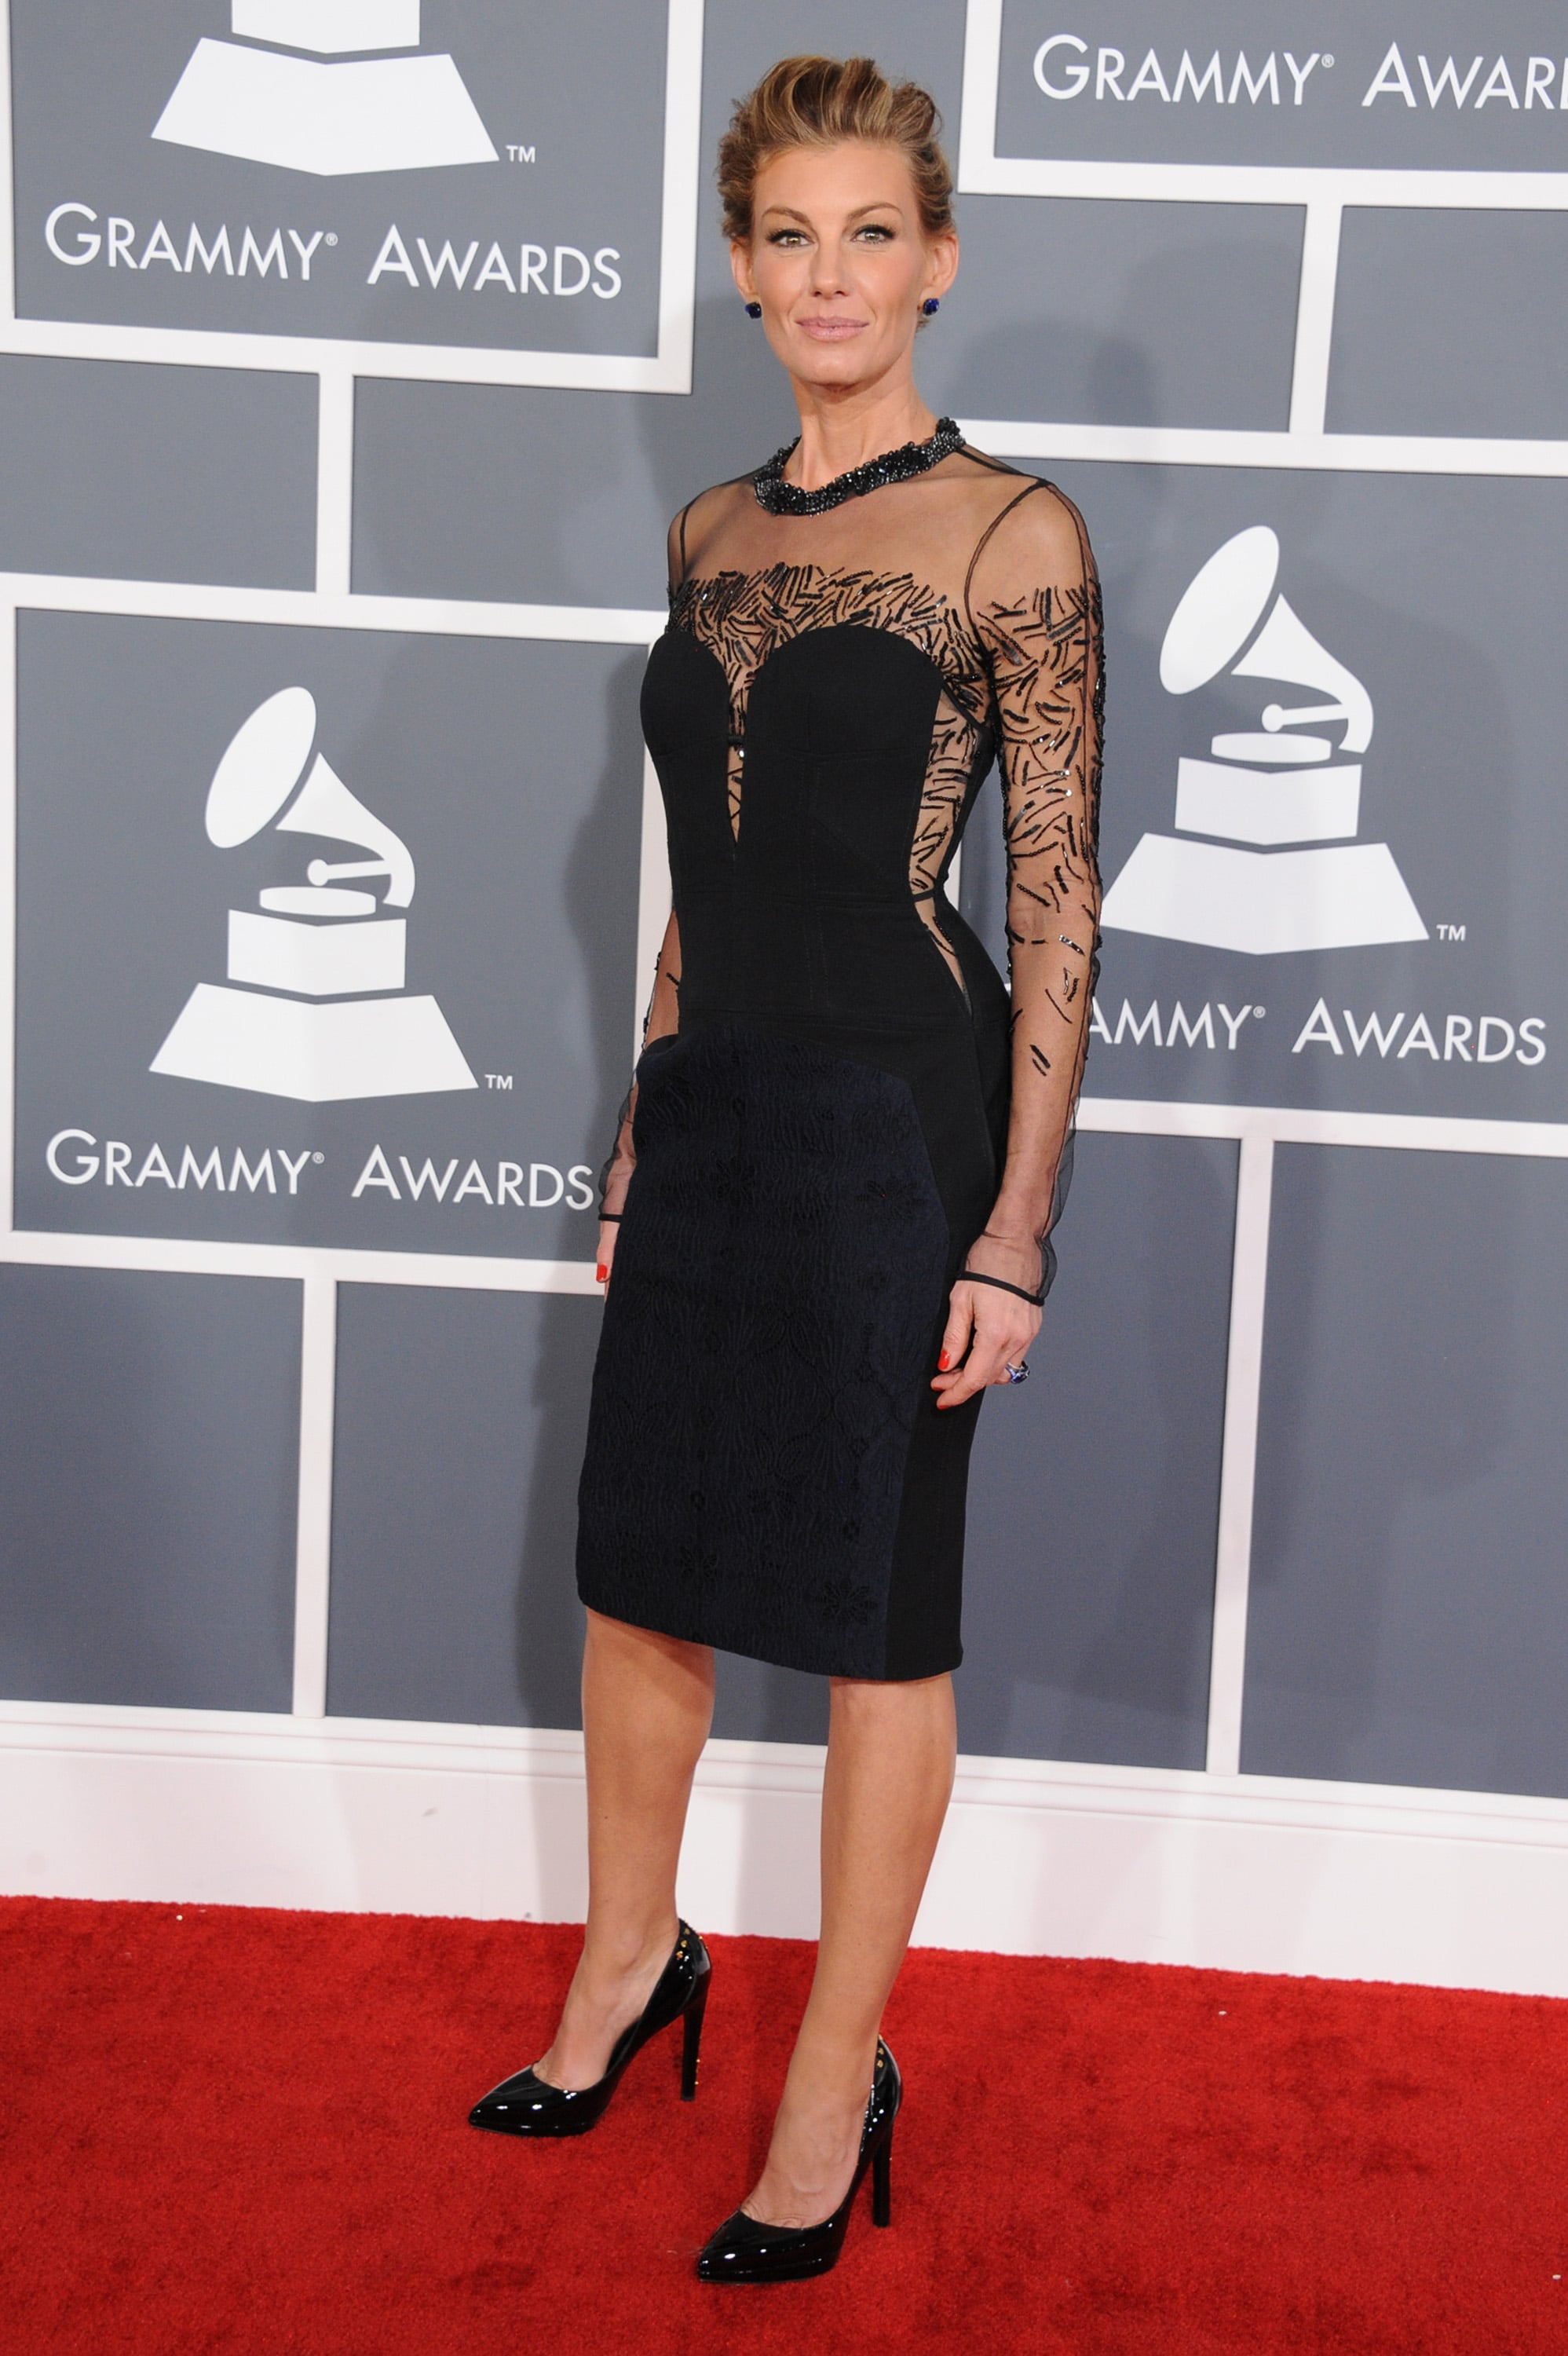 Faith Hill posed on the red carpet before the show.